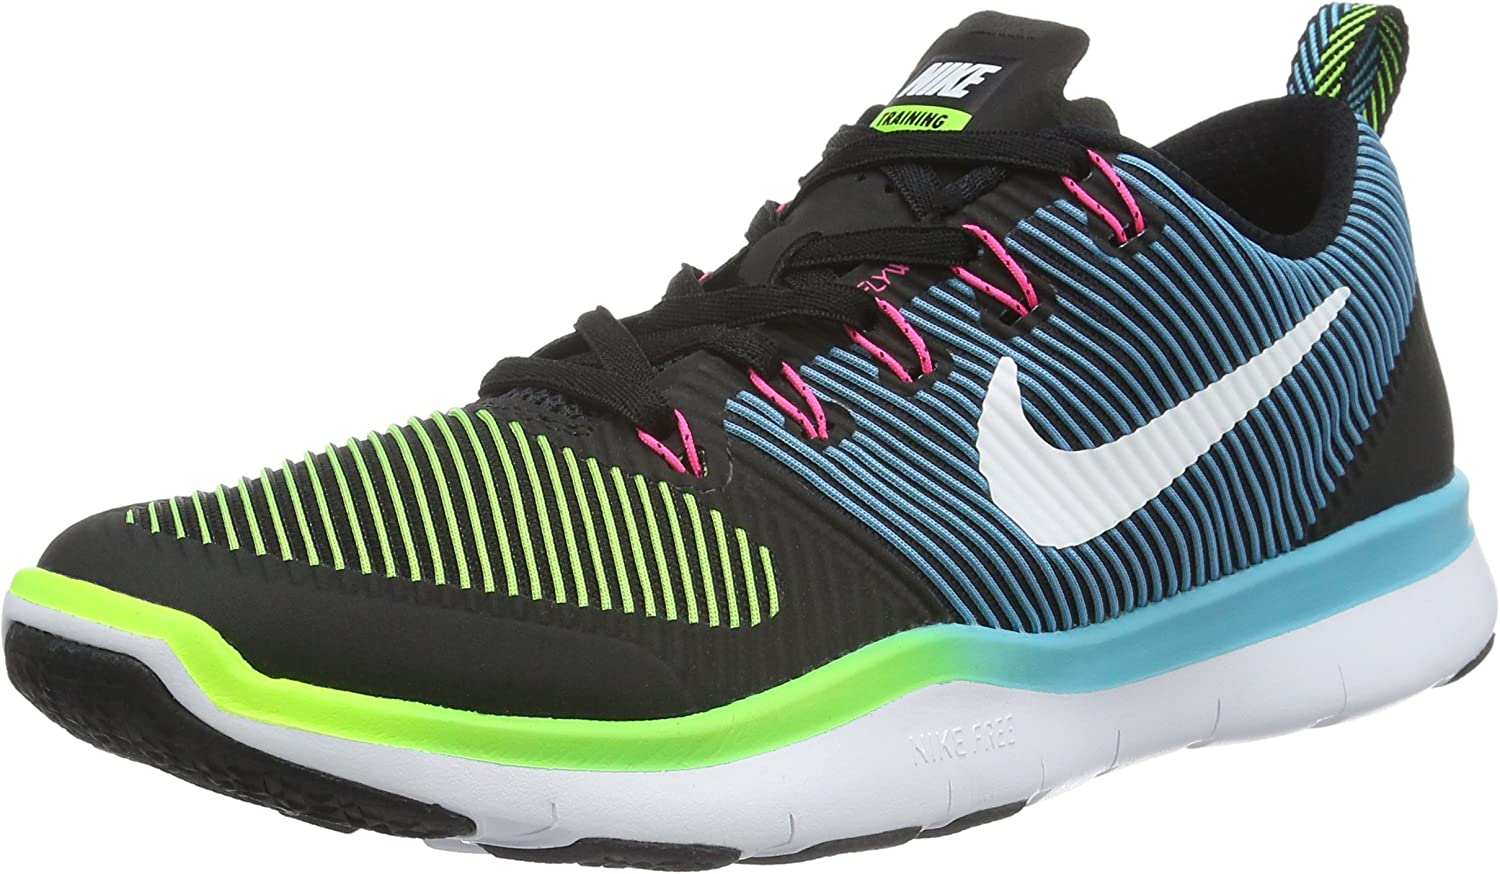 Nike Men's Free Versatility Training Running shoes